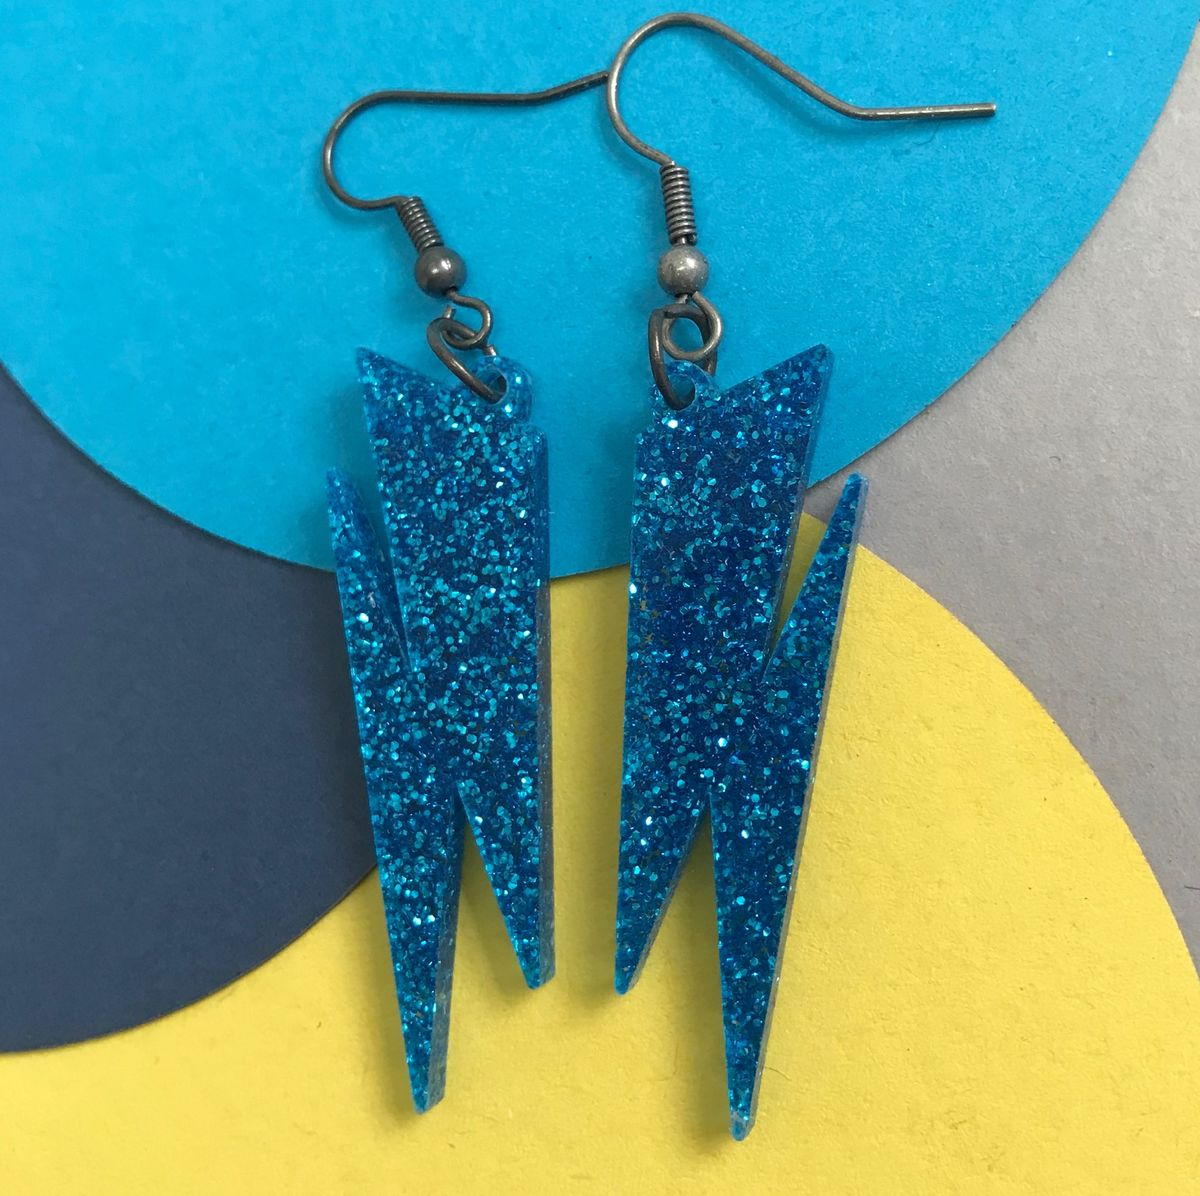 Sapphire Blue Glitter Lightning Earrings FREEPOST UK - product images  of